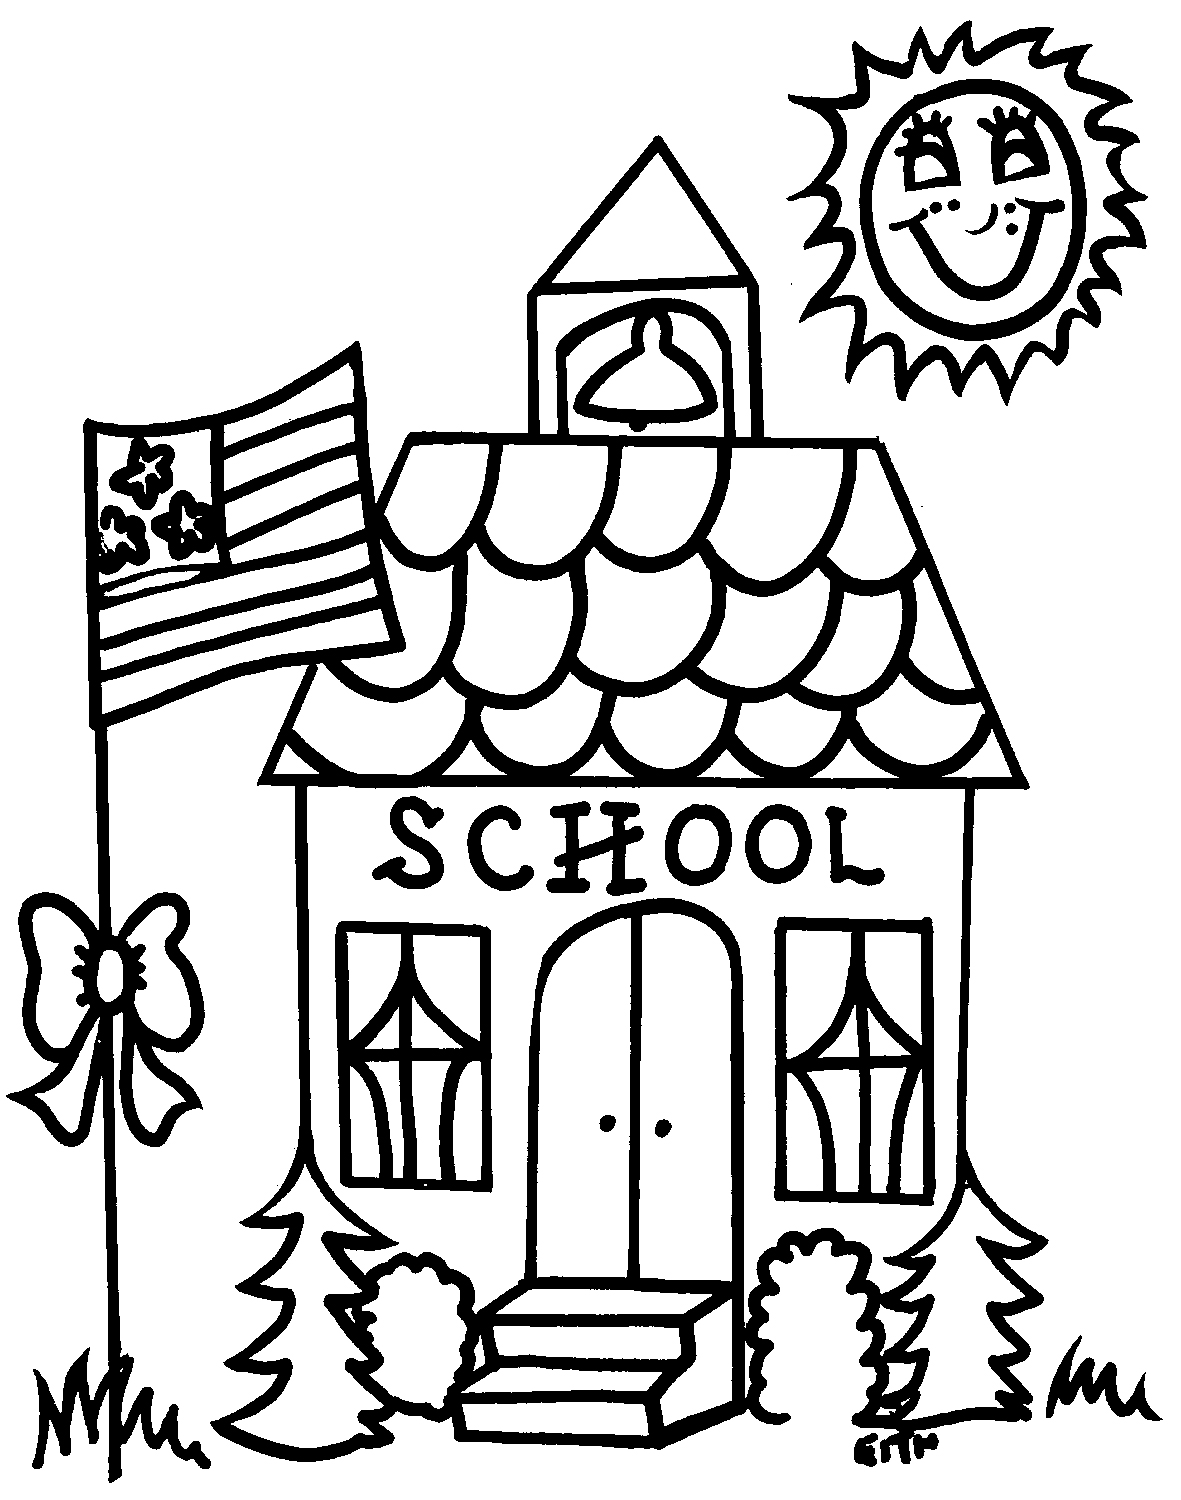 Free School House Outline Download Free Clip Art Free Clip Art On Clipart Library